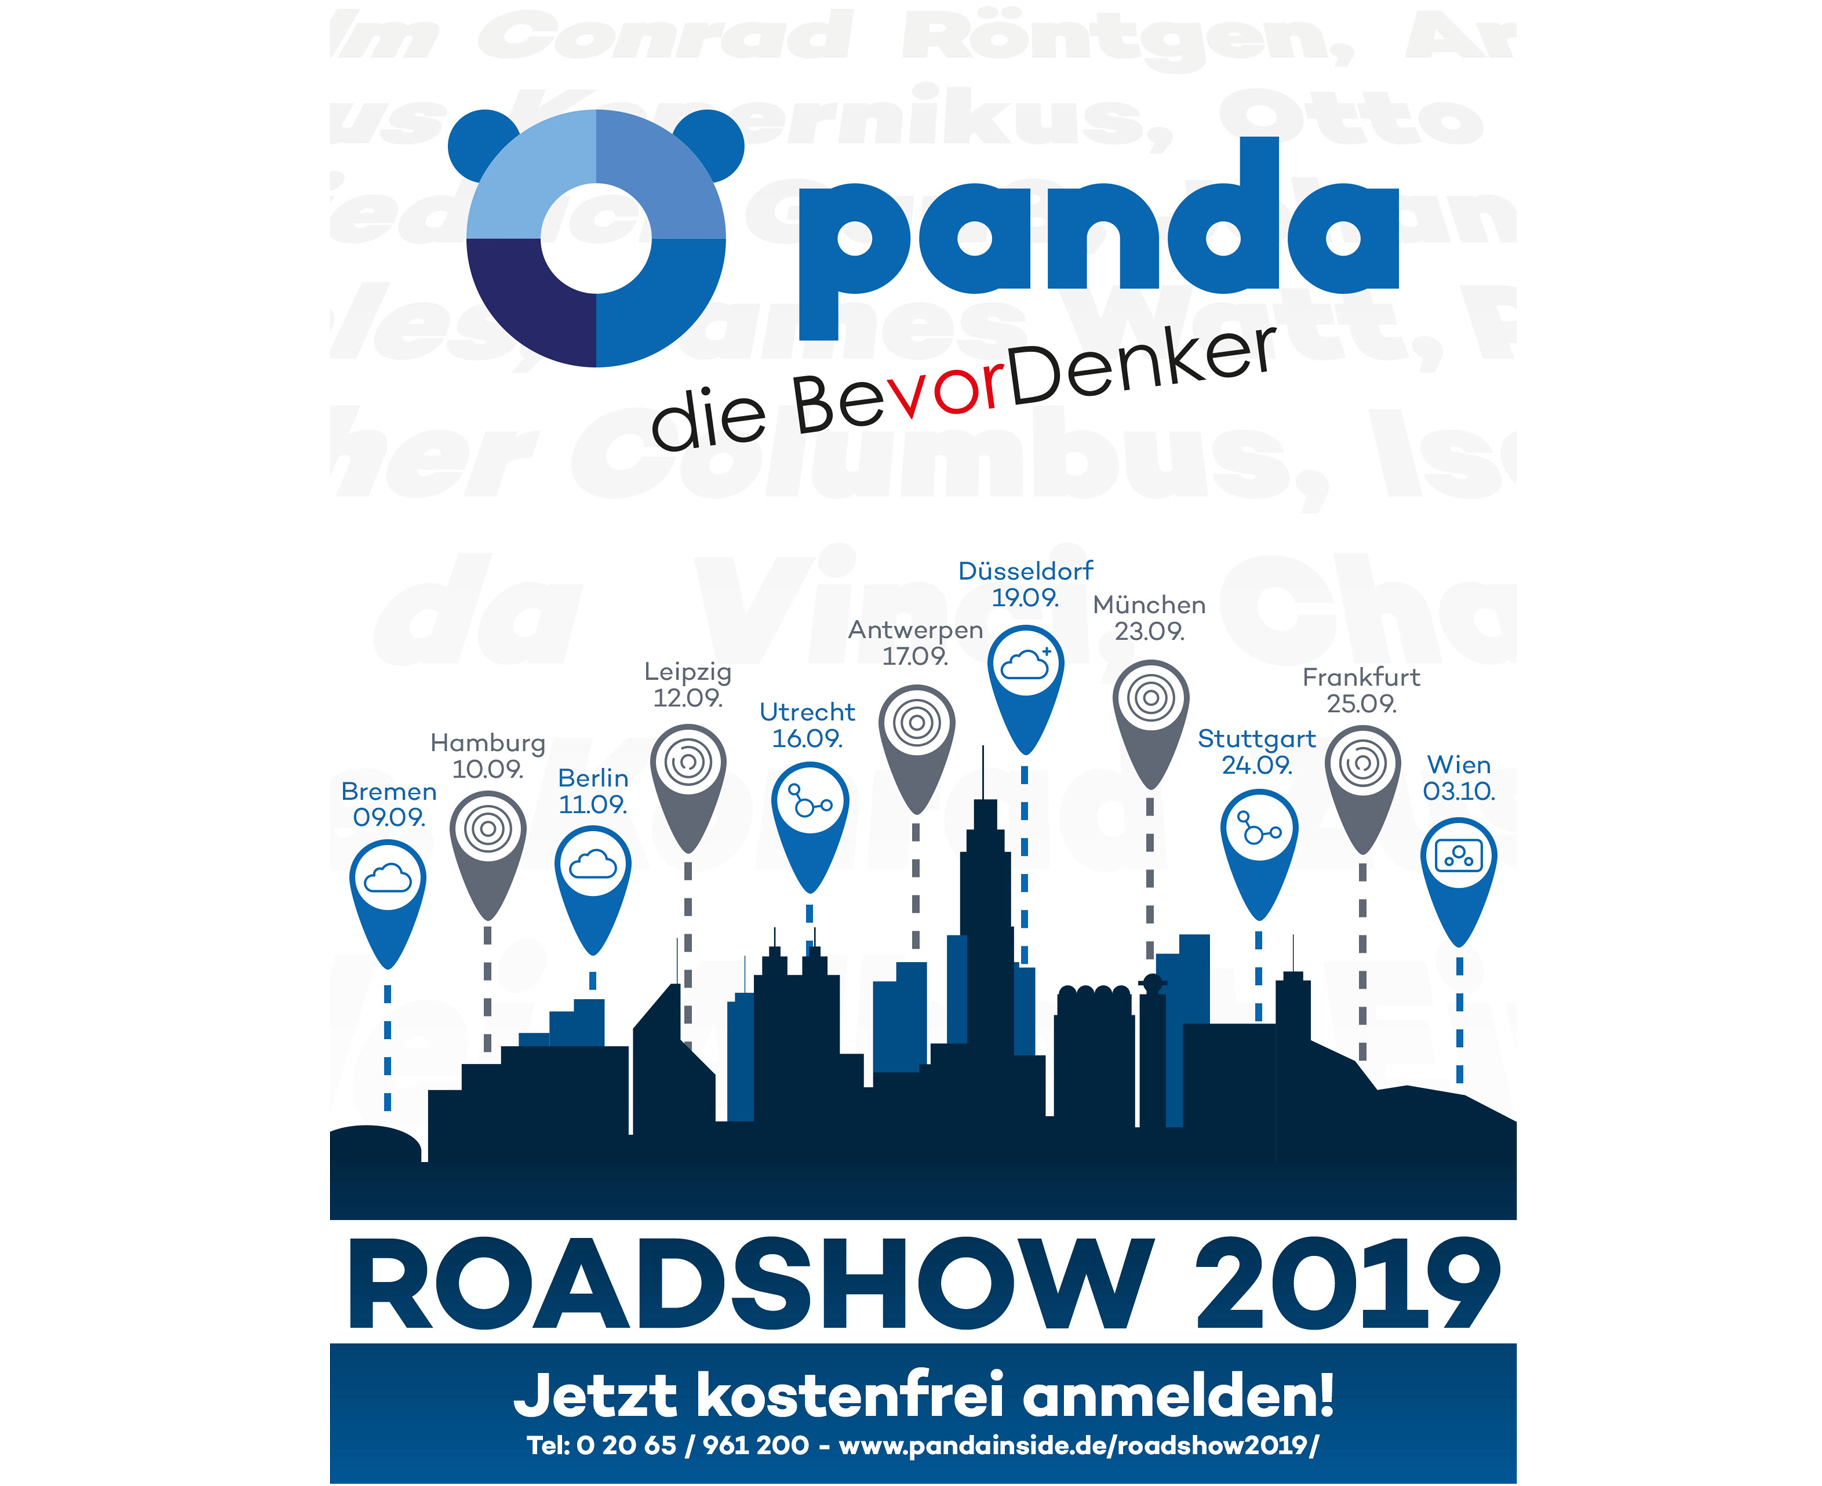 Panda Security Roadshow in elf Städten